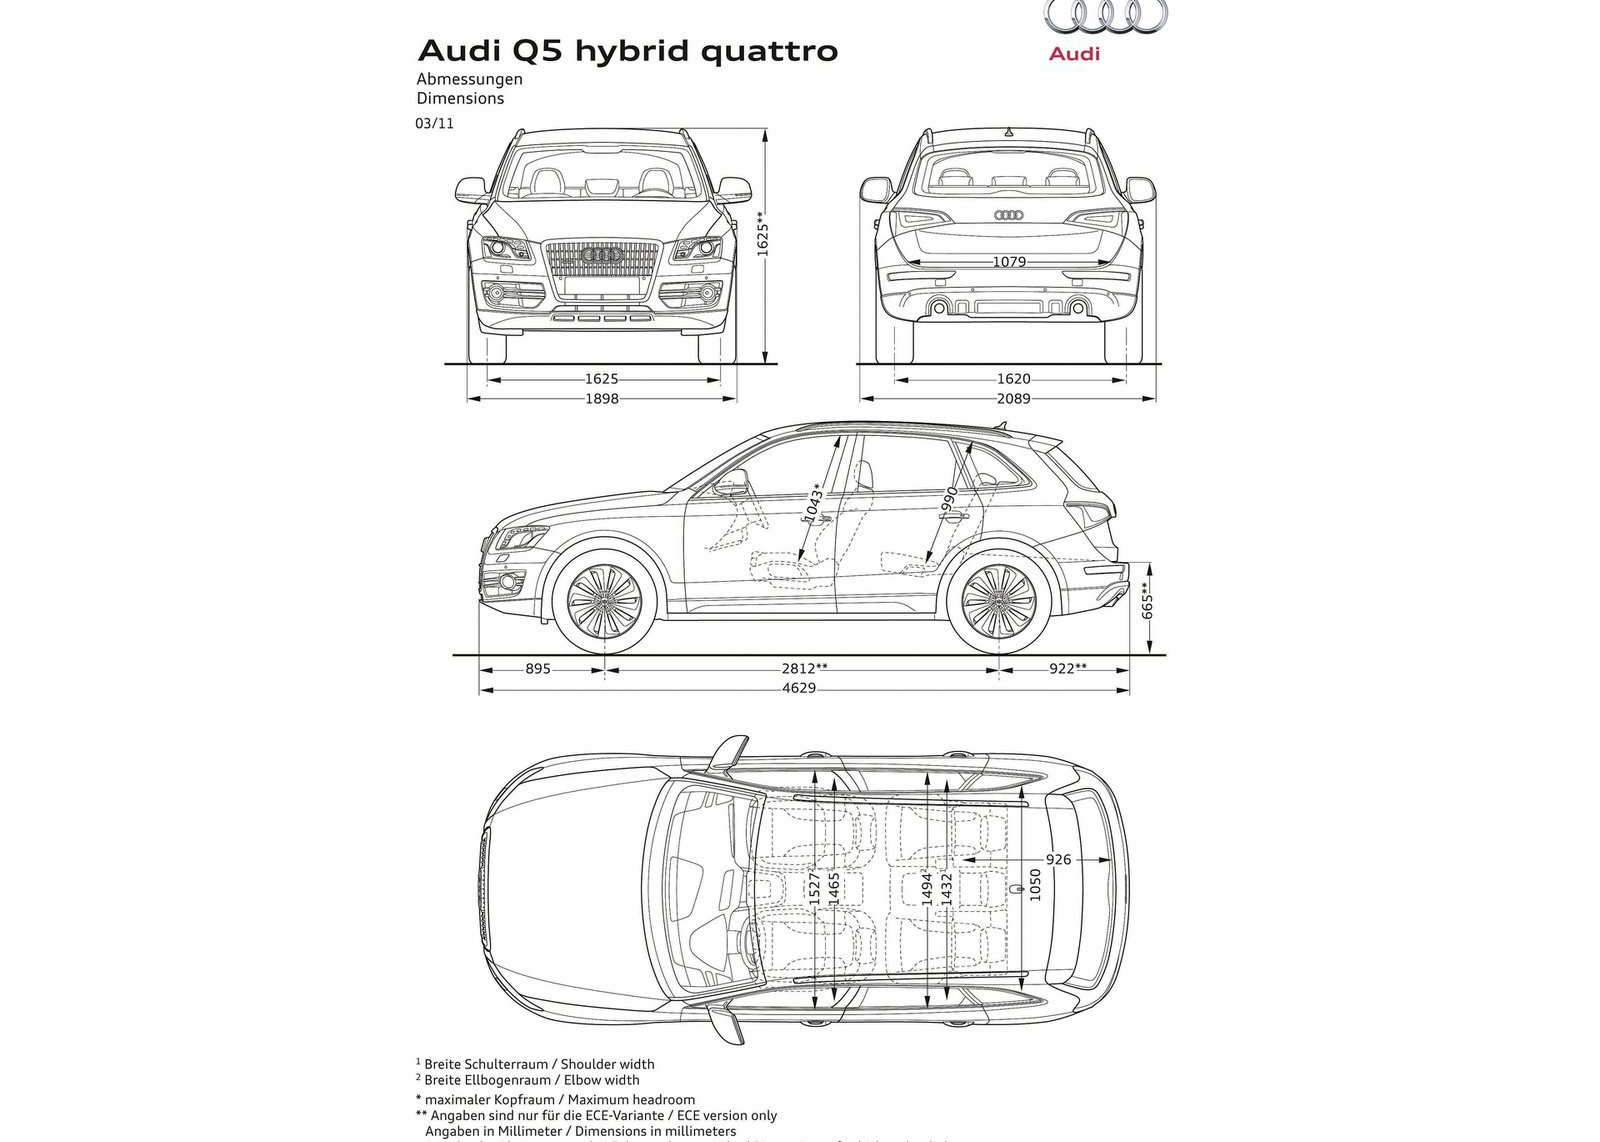 2012 Audi Q5 Hybrid Wallpapers The World Of Audi